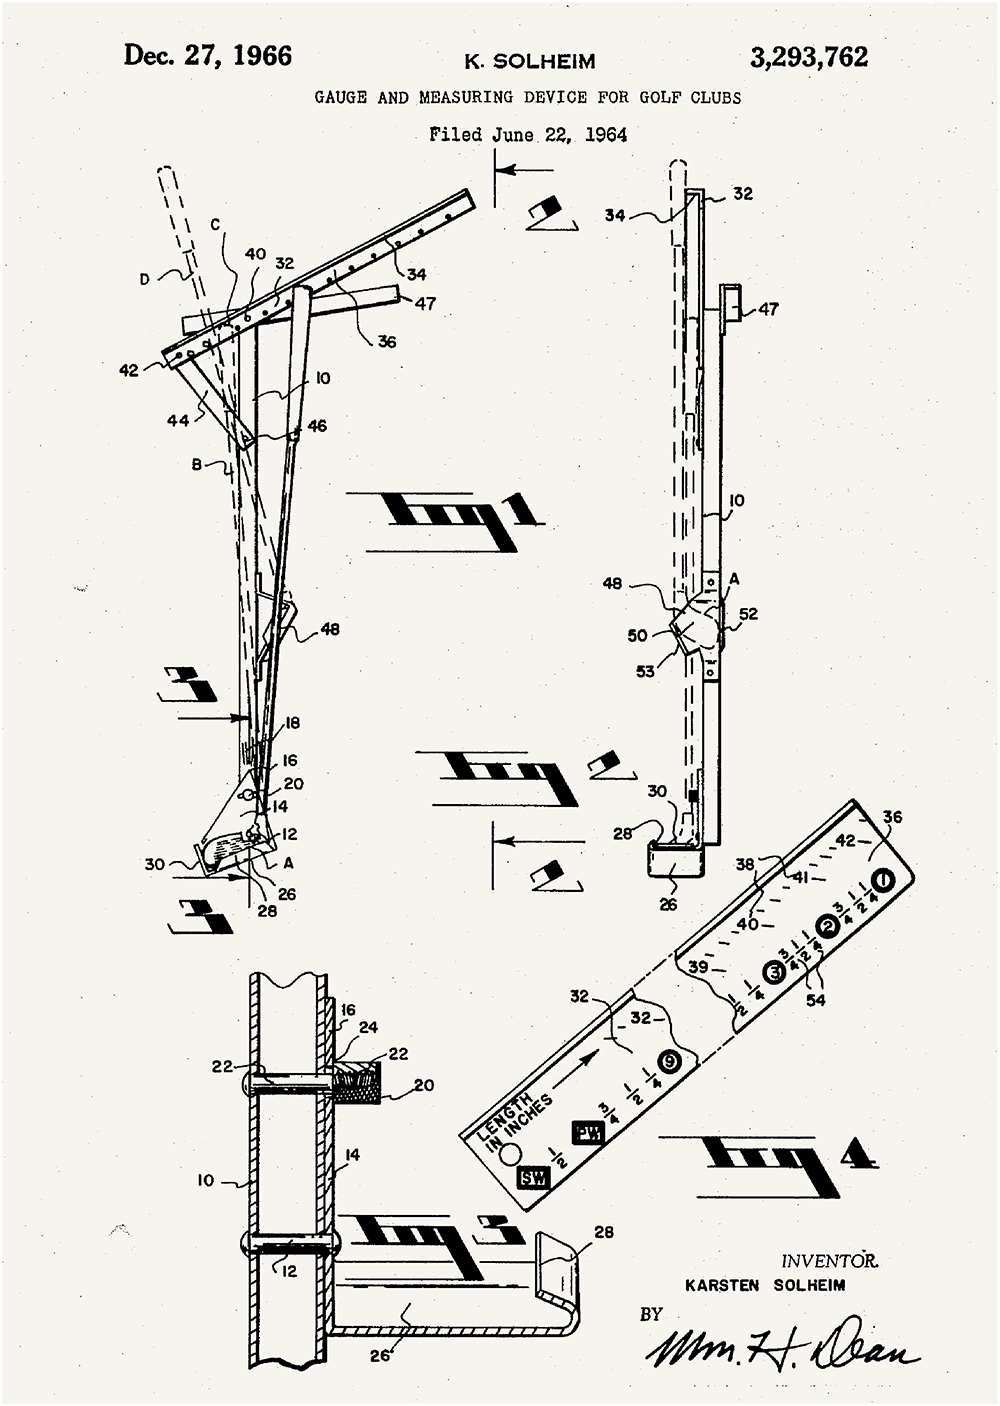 In 1966, Karsten Solheim developed this gauge and measuring device for golf clubs.